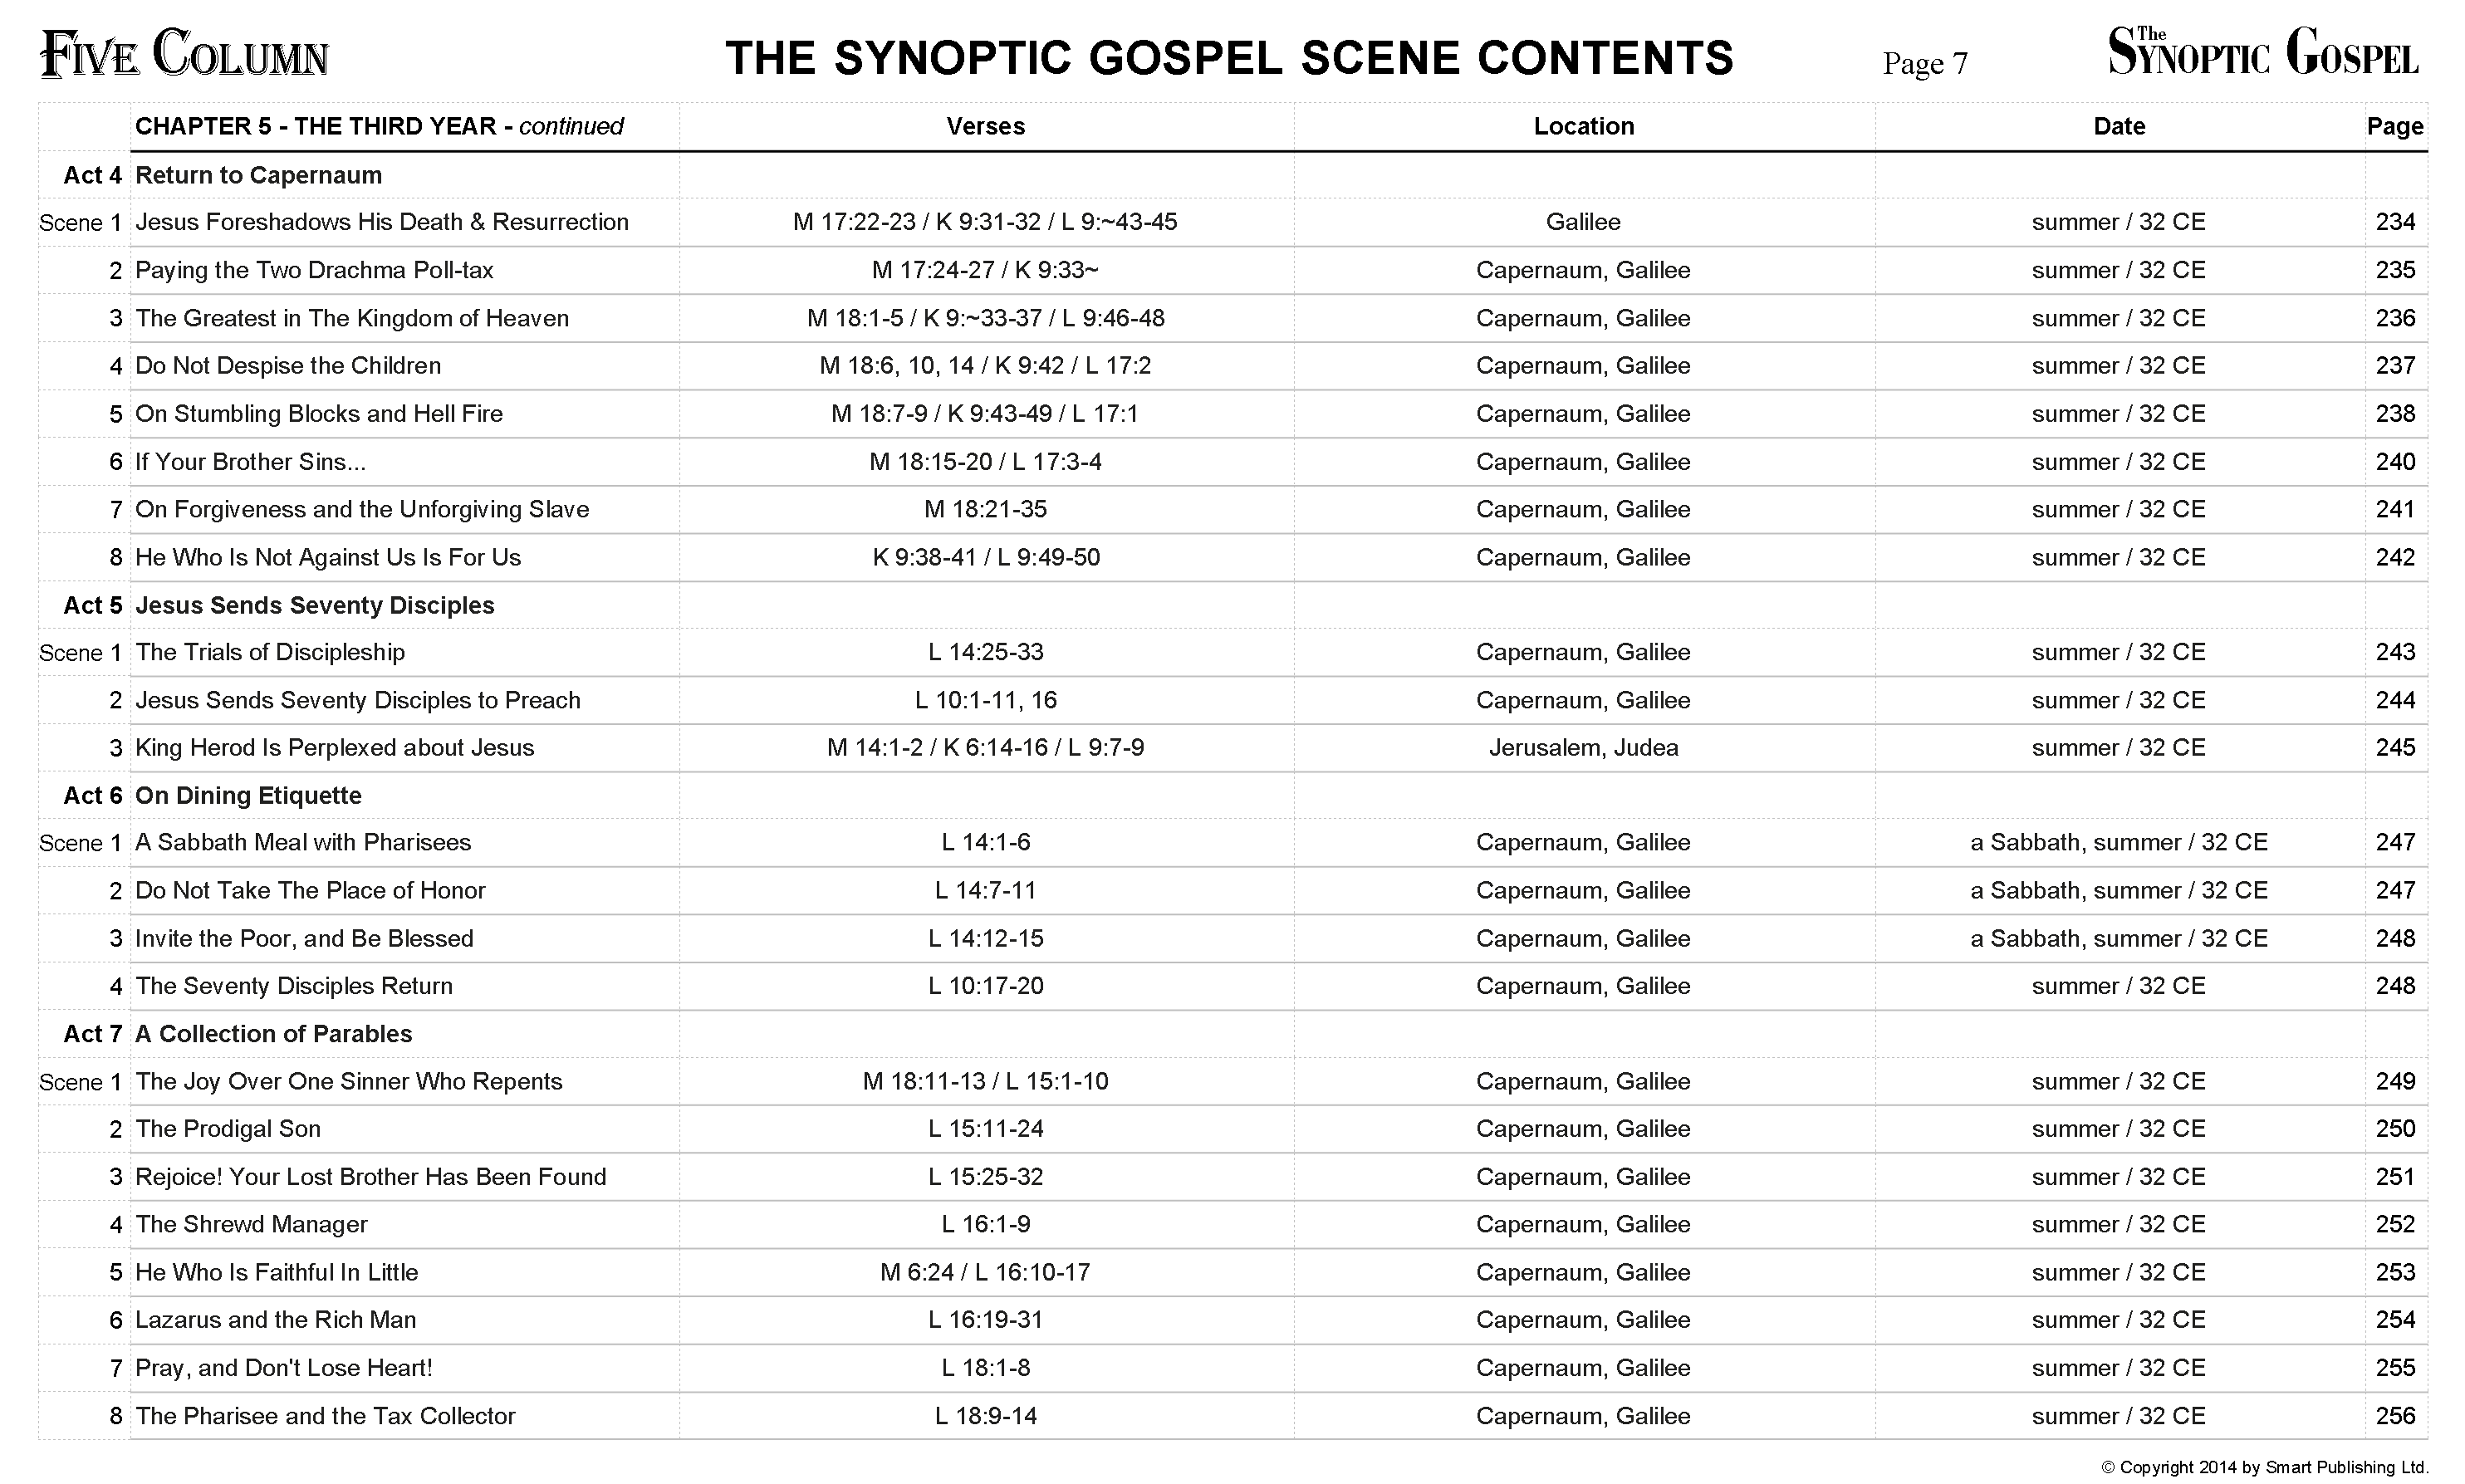 The Synoptic Gospel - Scene Contents - Chapter 5